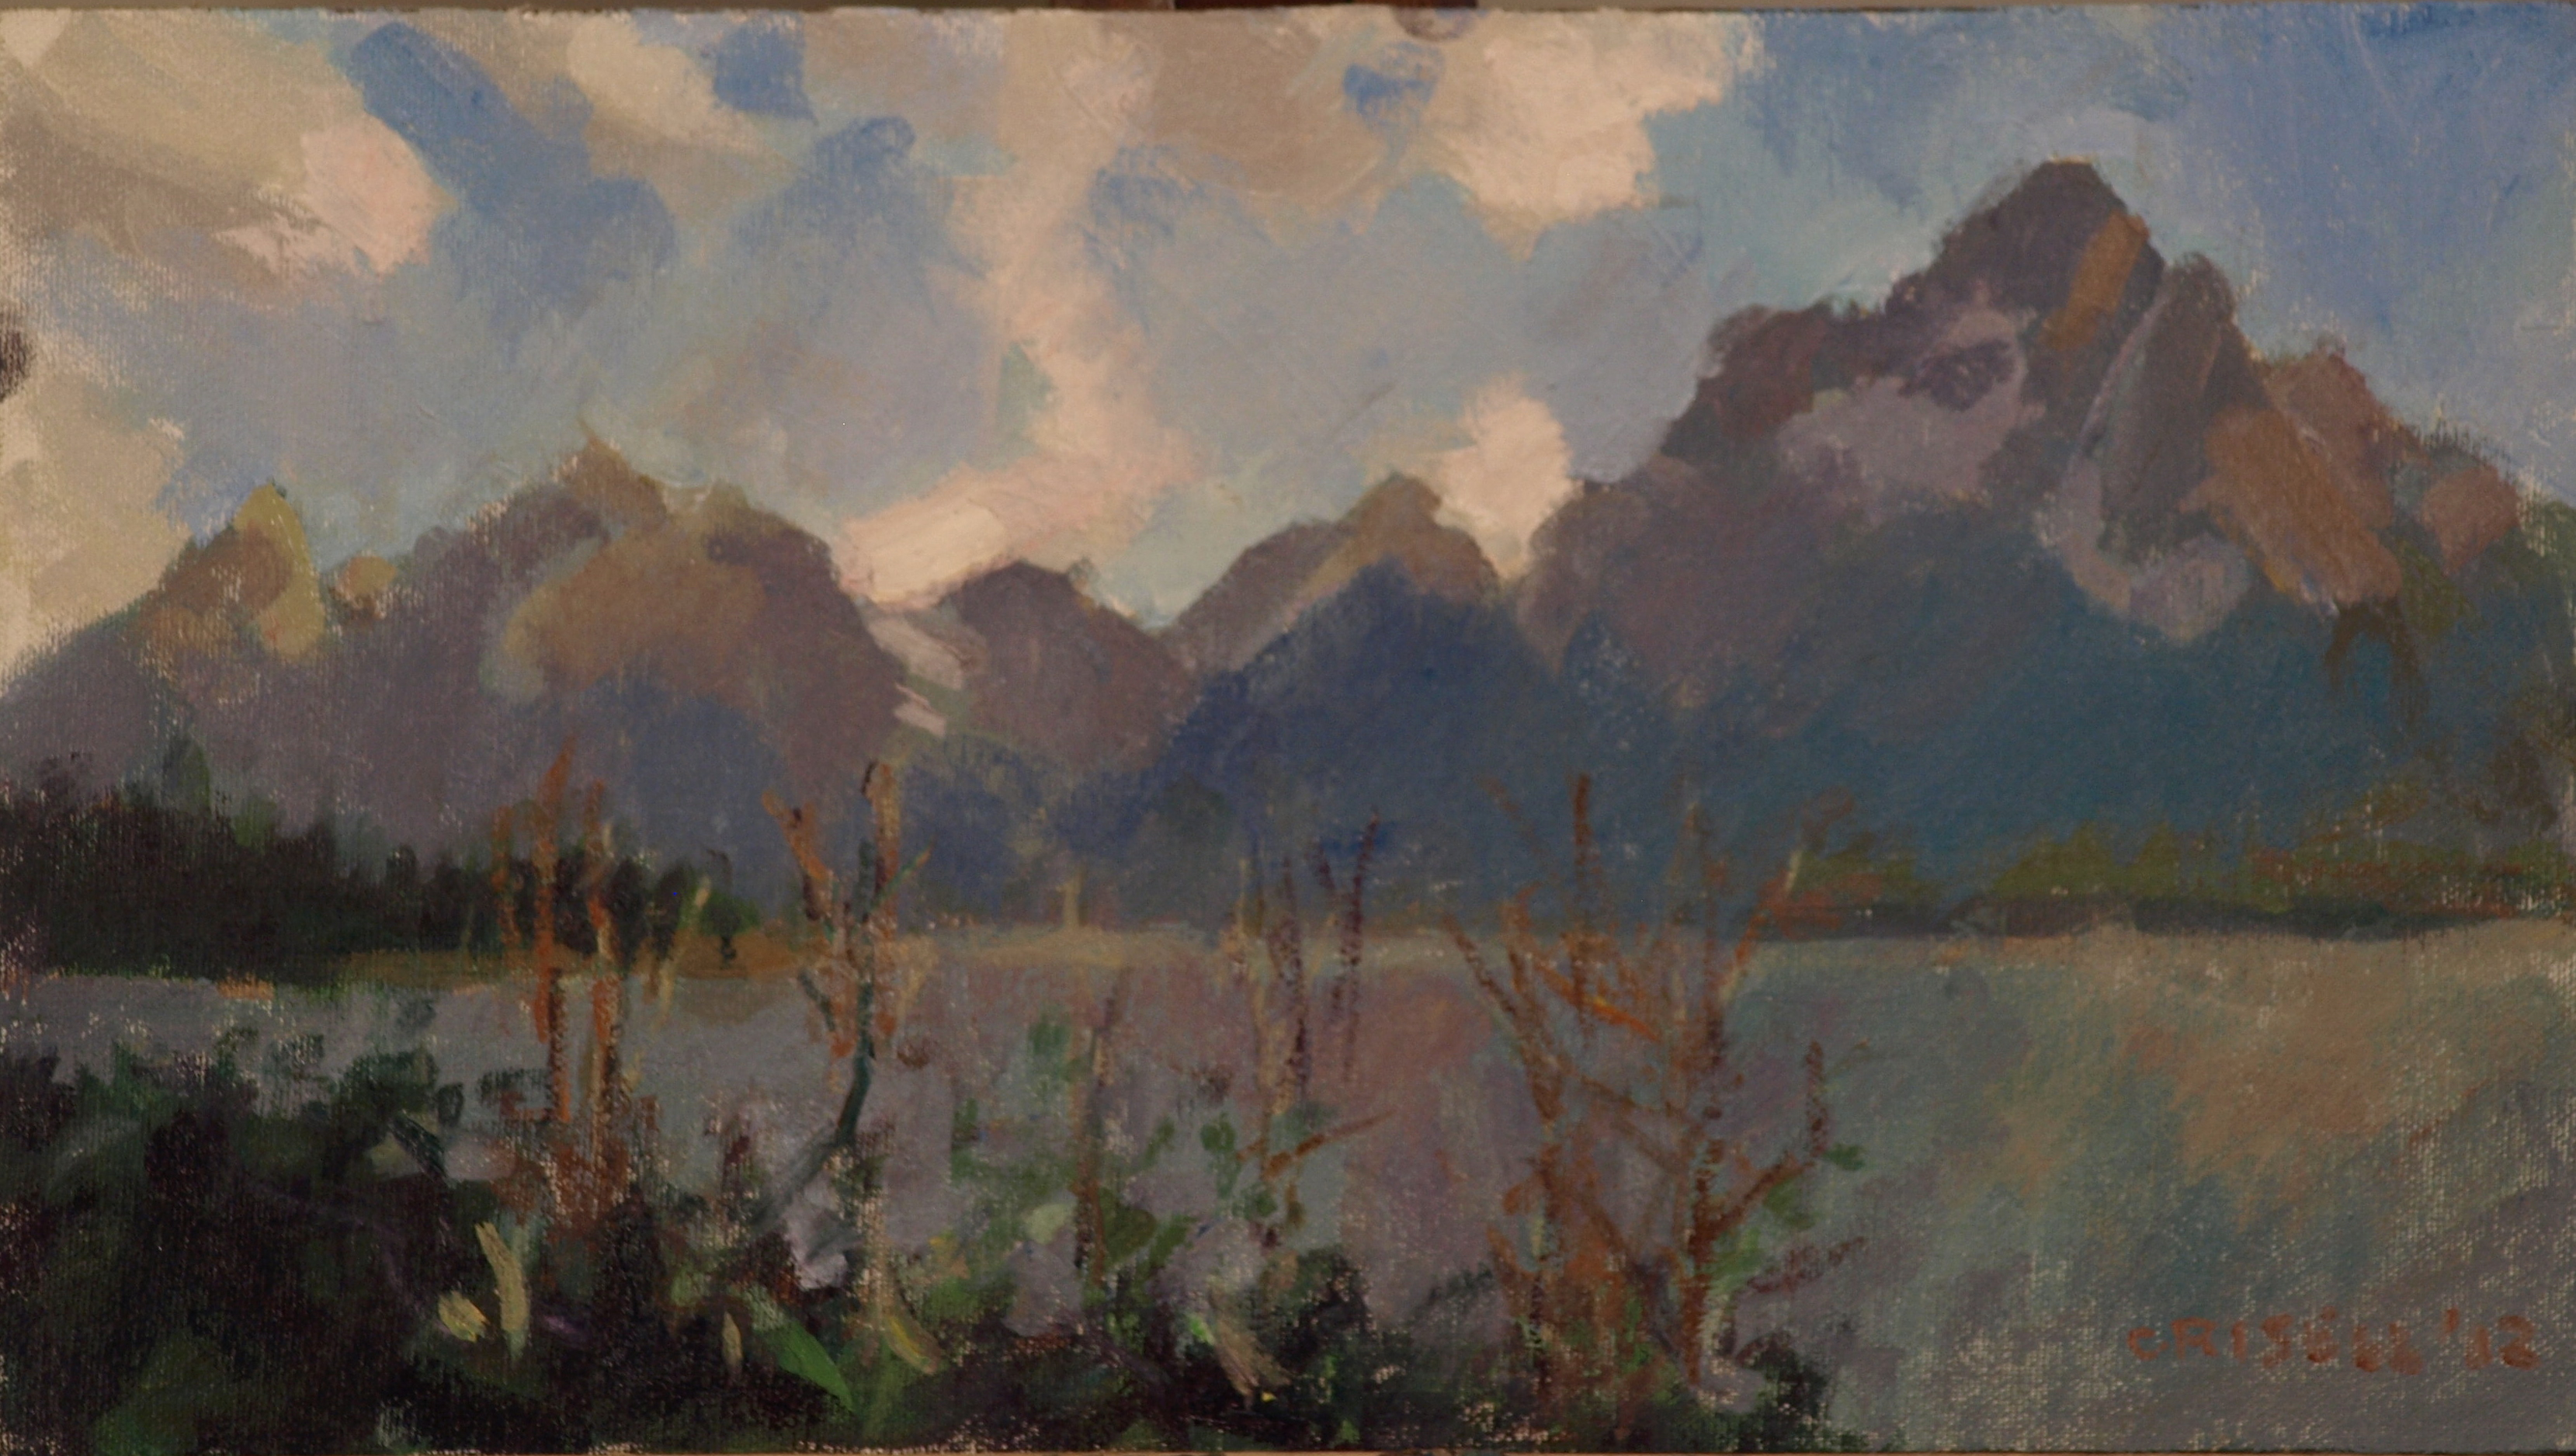 Jackson Lake, Oil on Canvas on Panel, 9 x 16 Inches, by Susan Grisell, $250